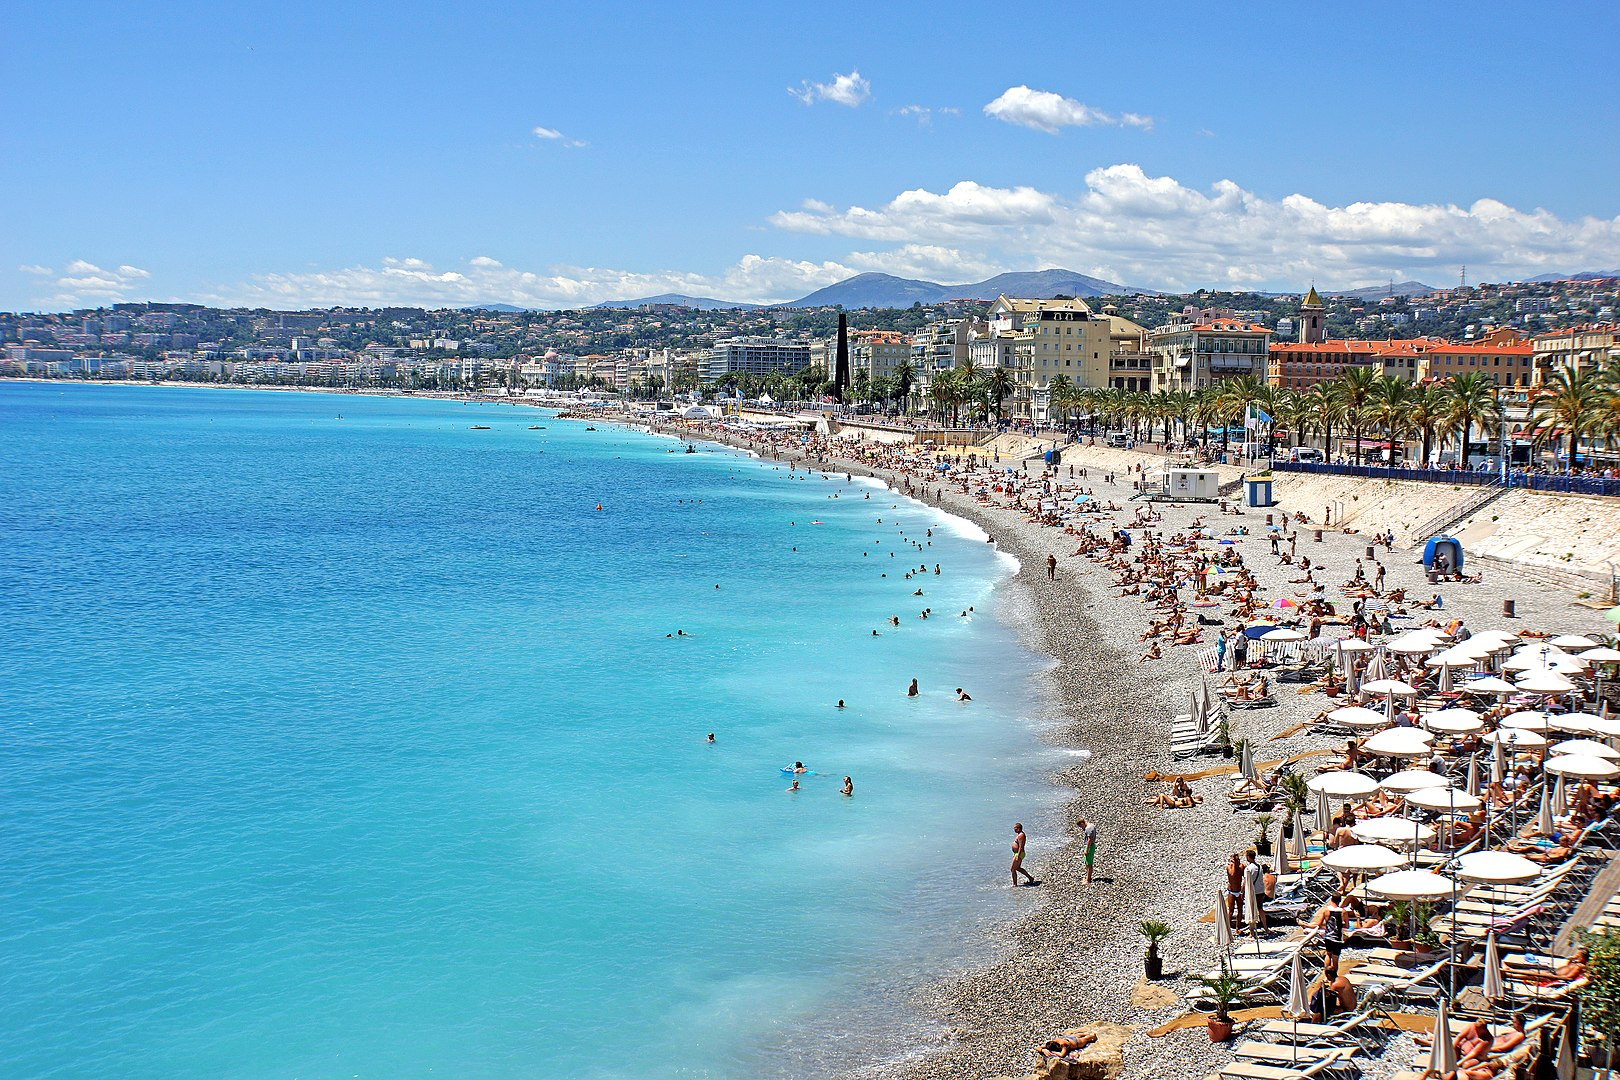 French Riviera - Beach in Nice © Dennis Jarvis - licence [CC BY-SA 2.0] from Wikimedia Commons